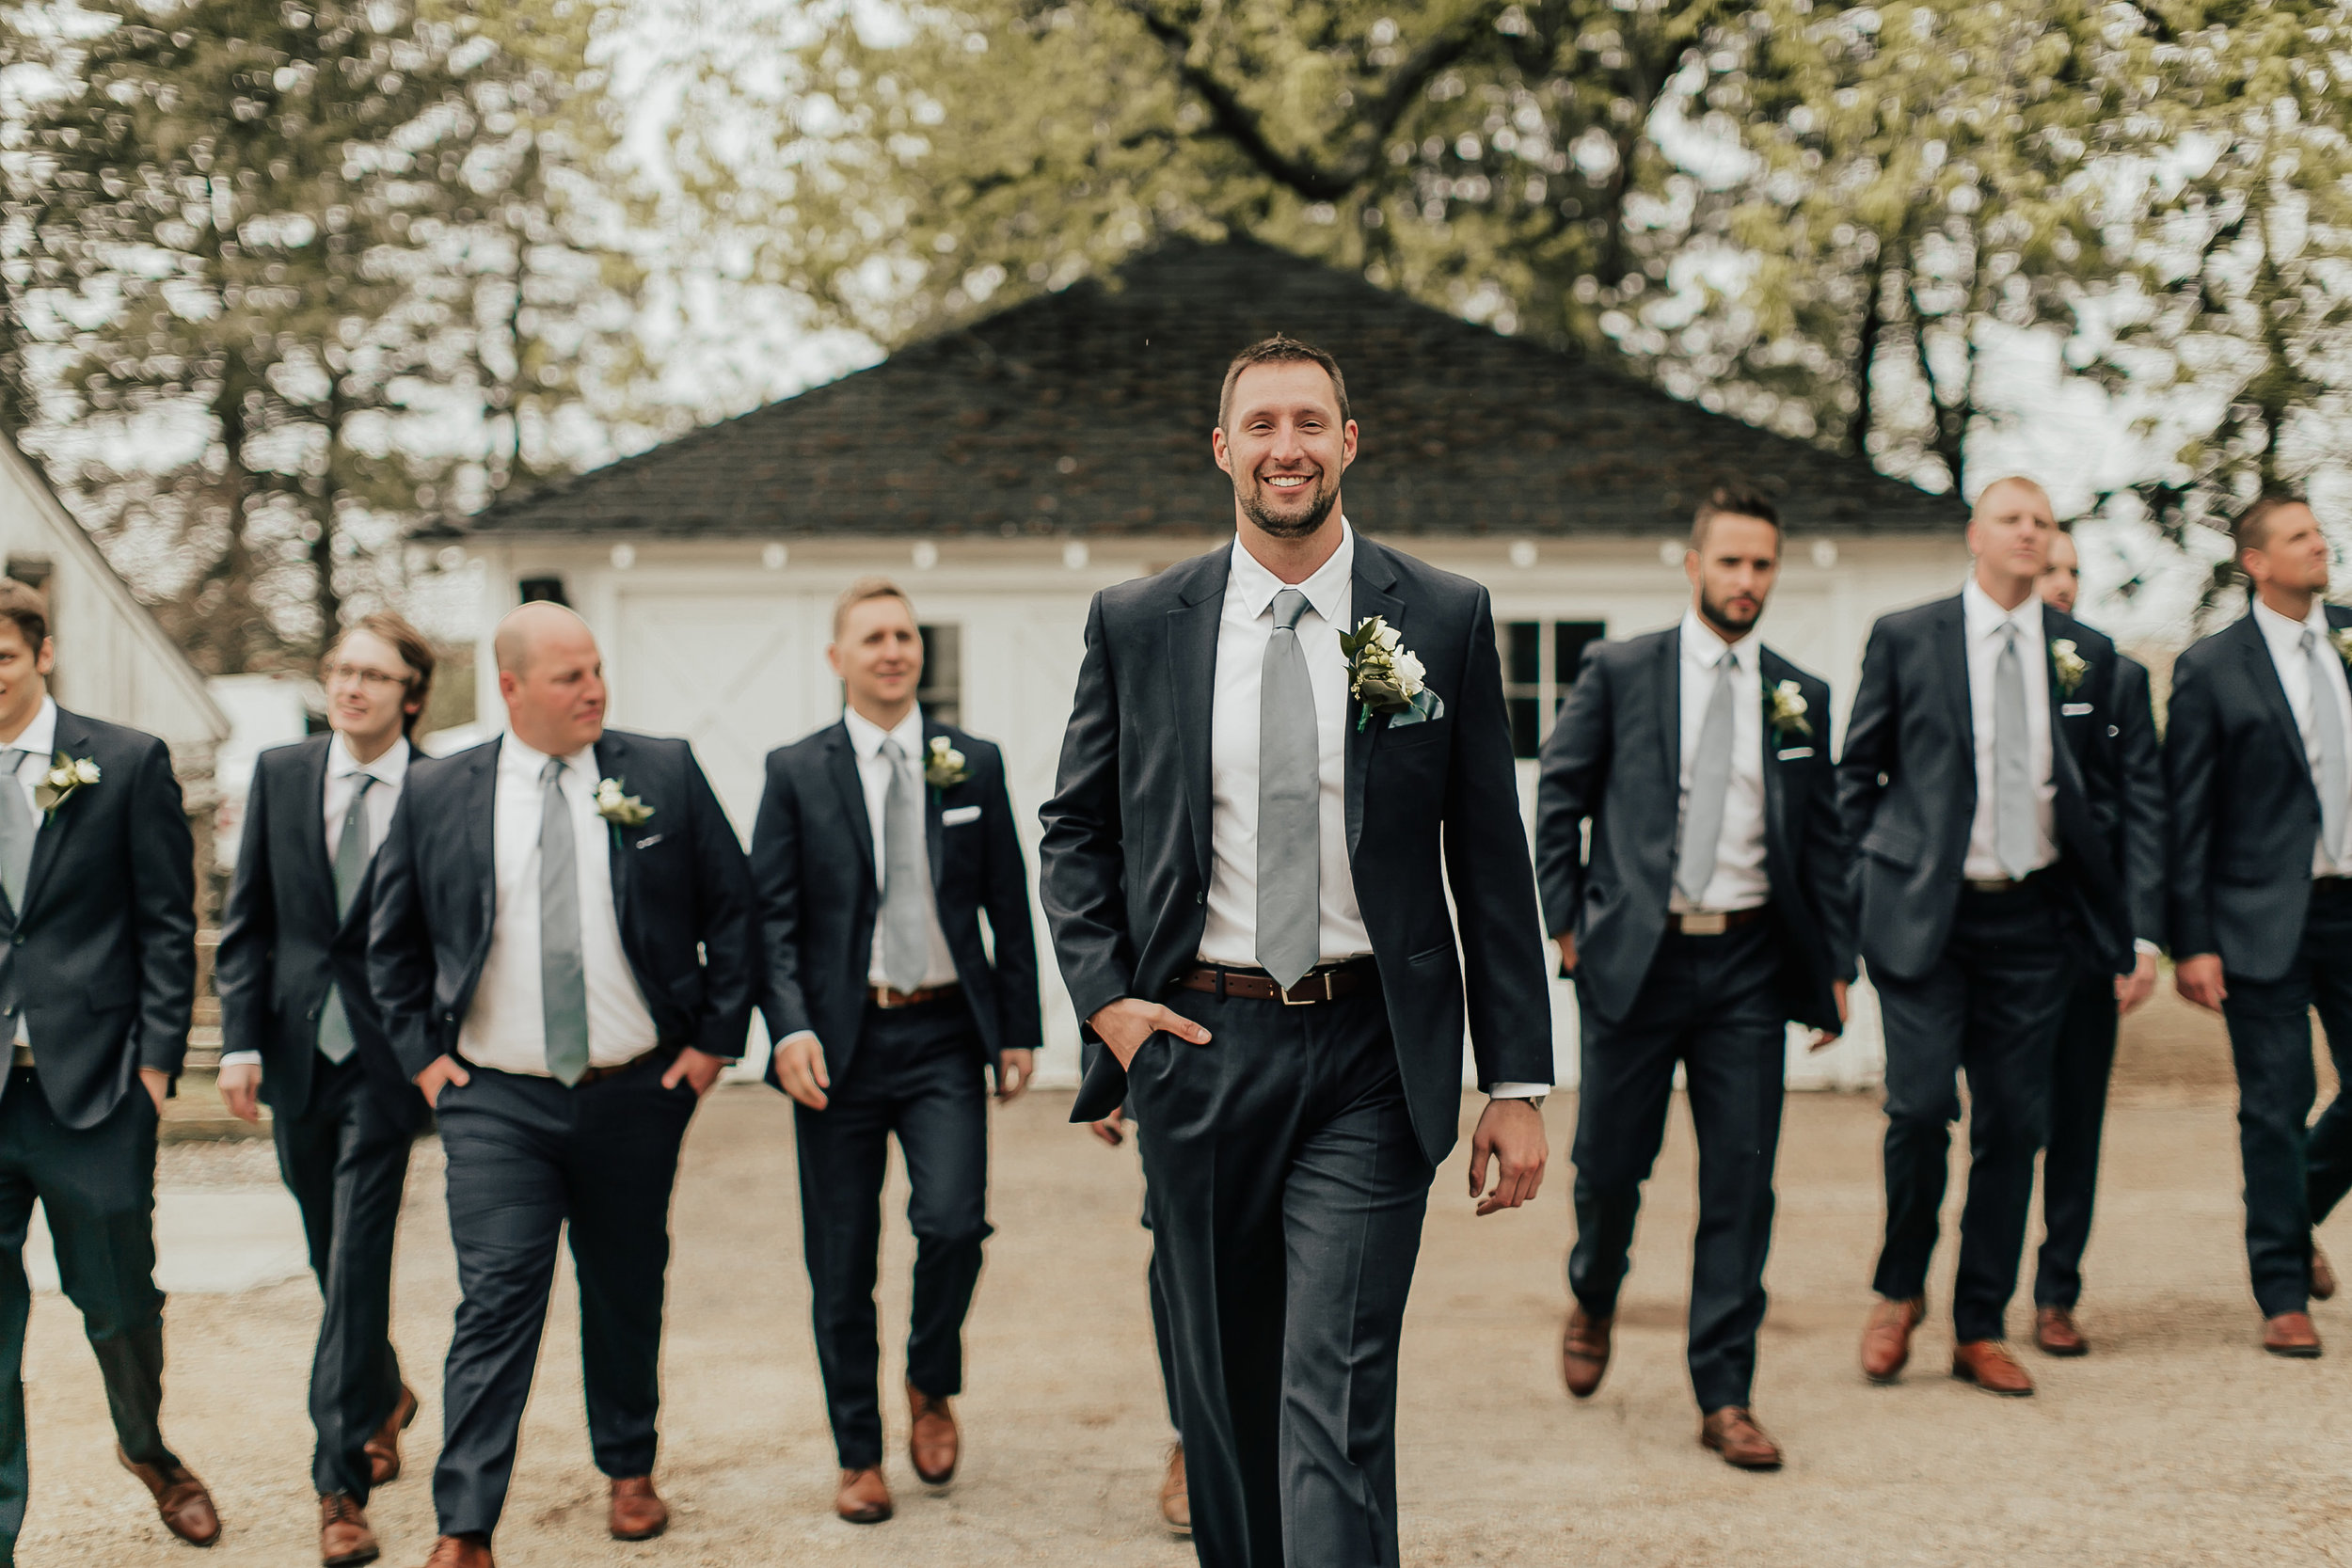 Legacy-Hil-Farm-Wedding-Groomsmen-MN.jpg